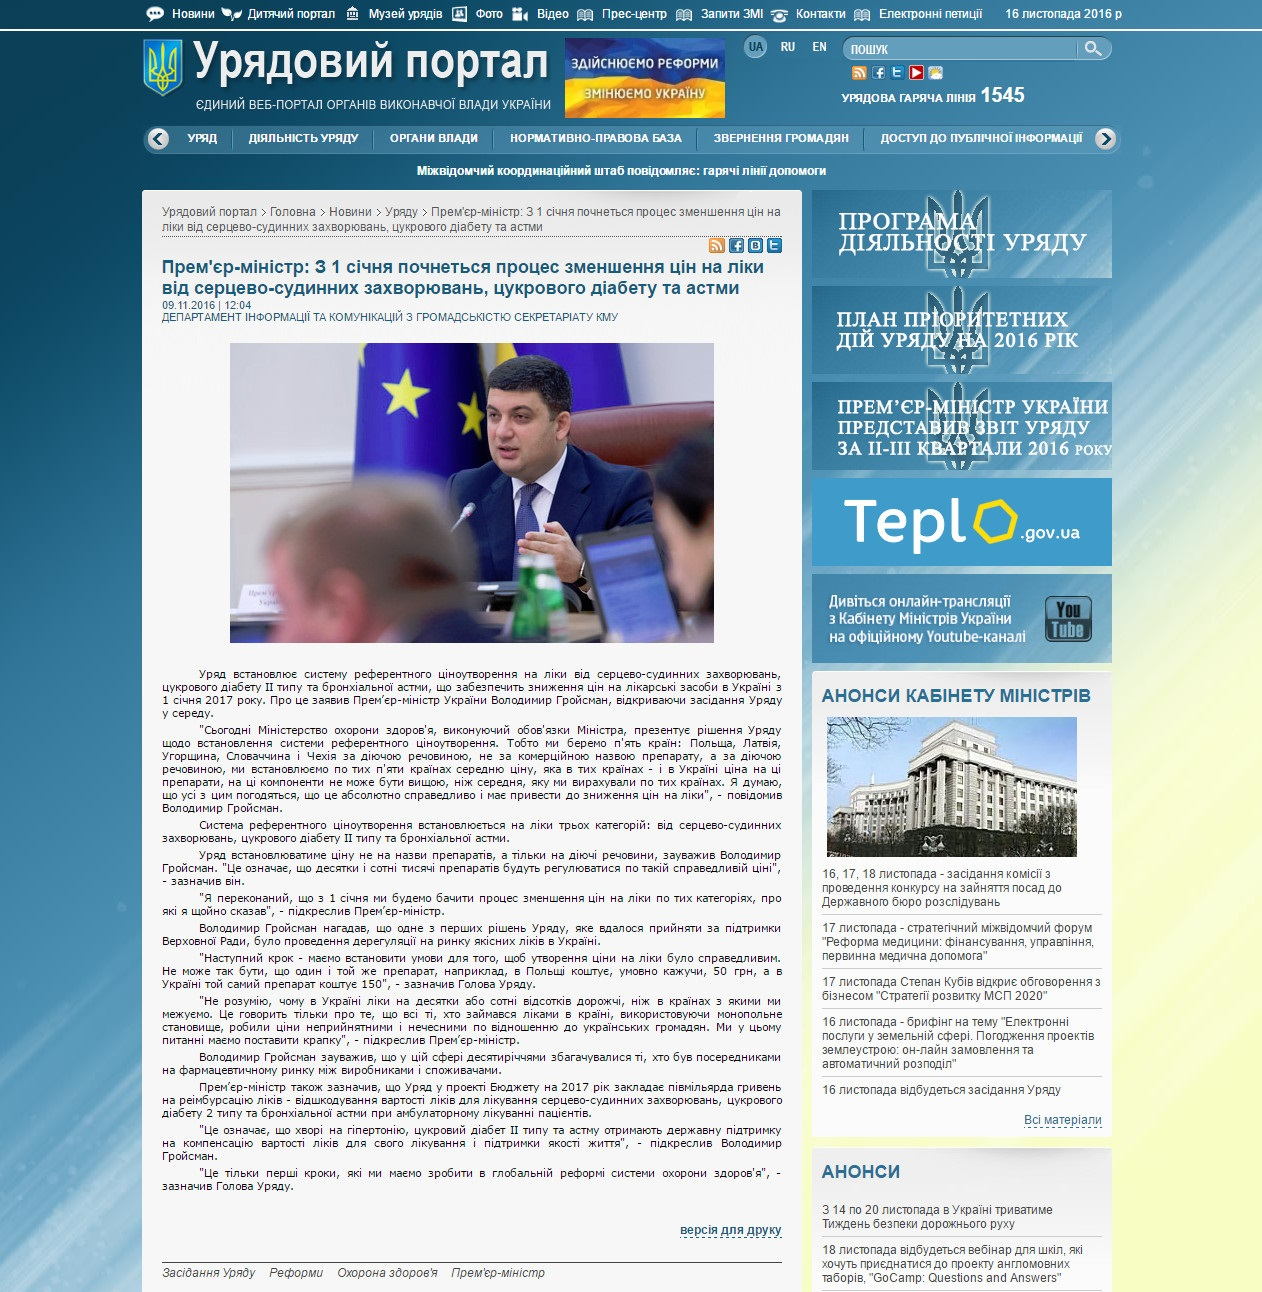 http://www.kmu.gov.ua/control/uk/publish/article?art_id=249470625&cat_id=244276429